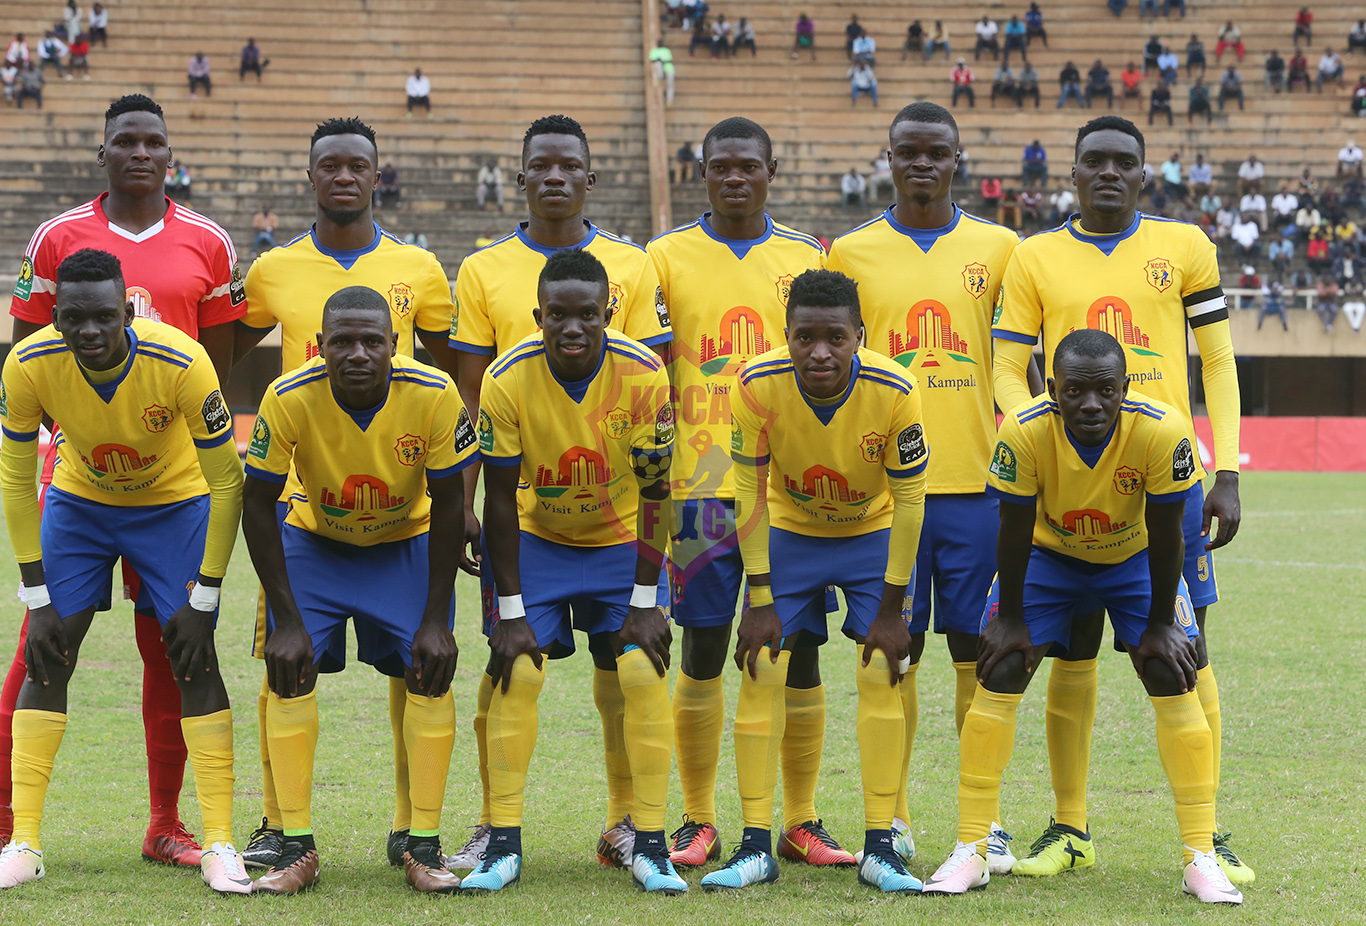 KCCA FC received a bye to get into the first round (file photo)